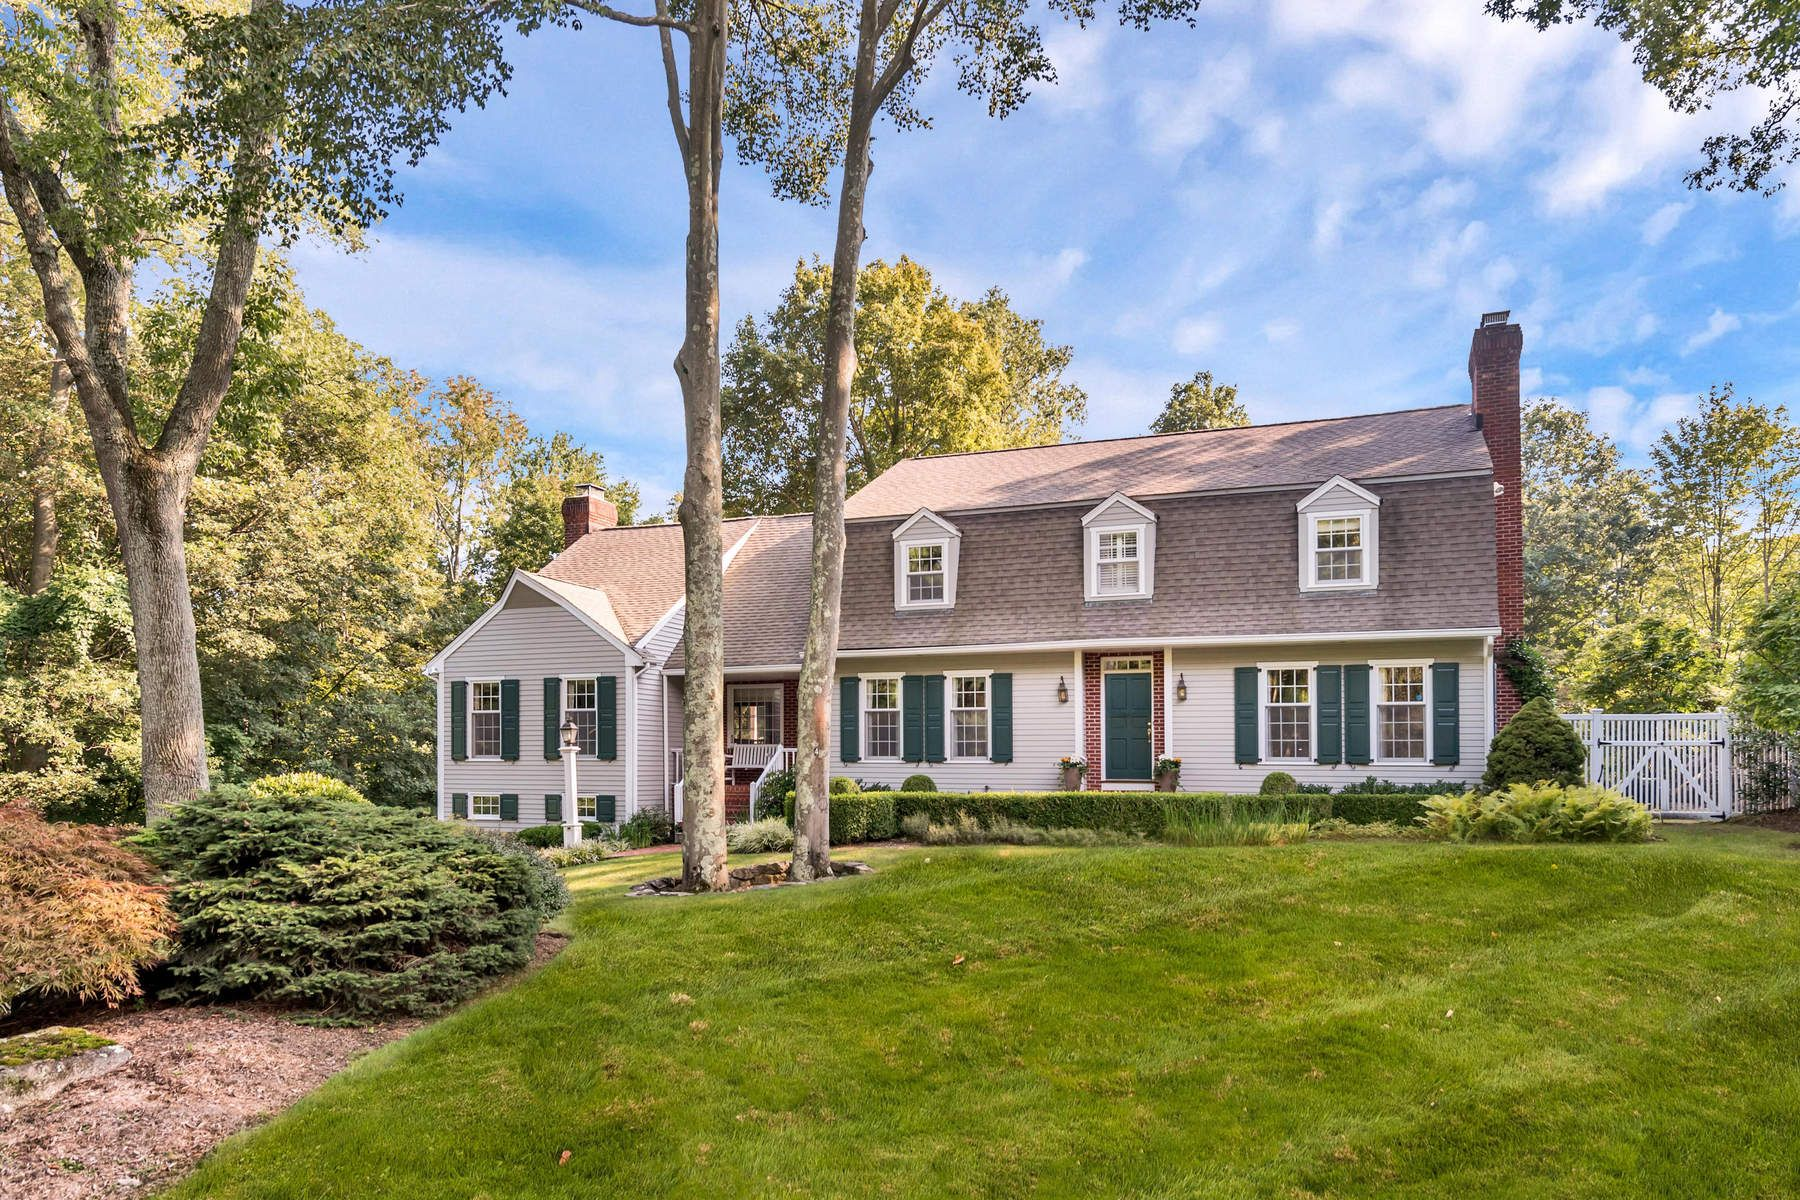 Single Family Home for Sale at 4 Arrowhead Lane 4 Arrowhead Lane Cos Cob, Connecticut 06807 United States